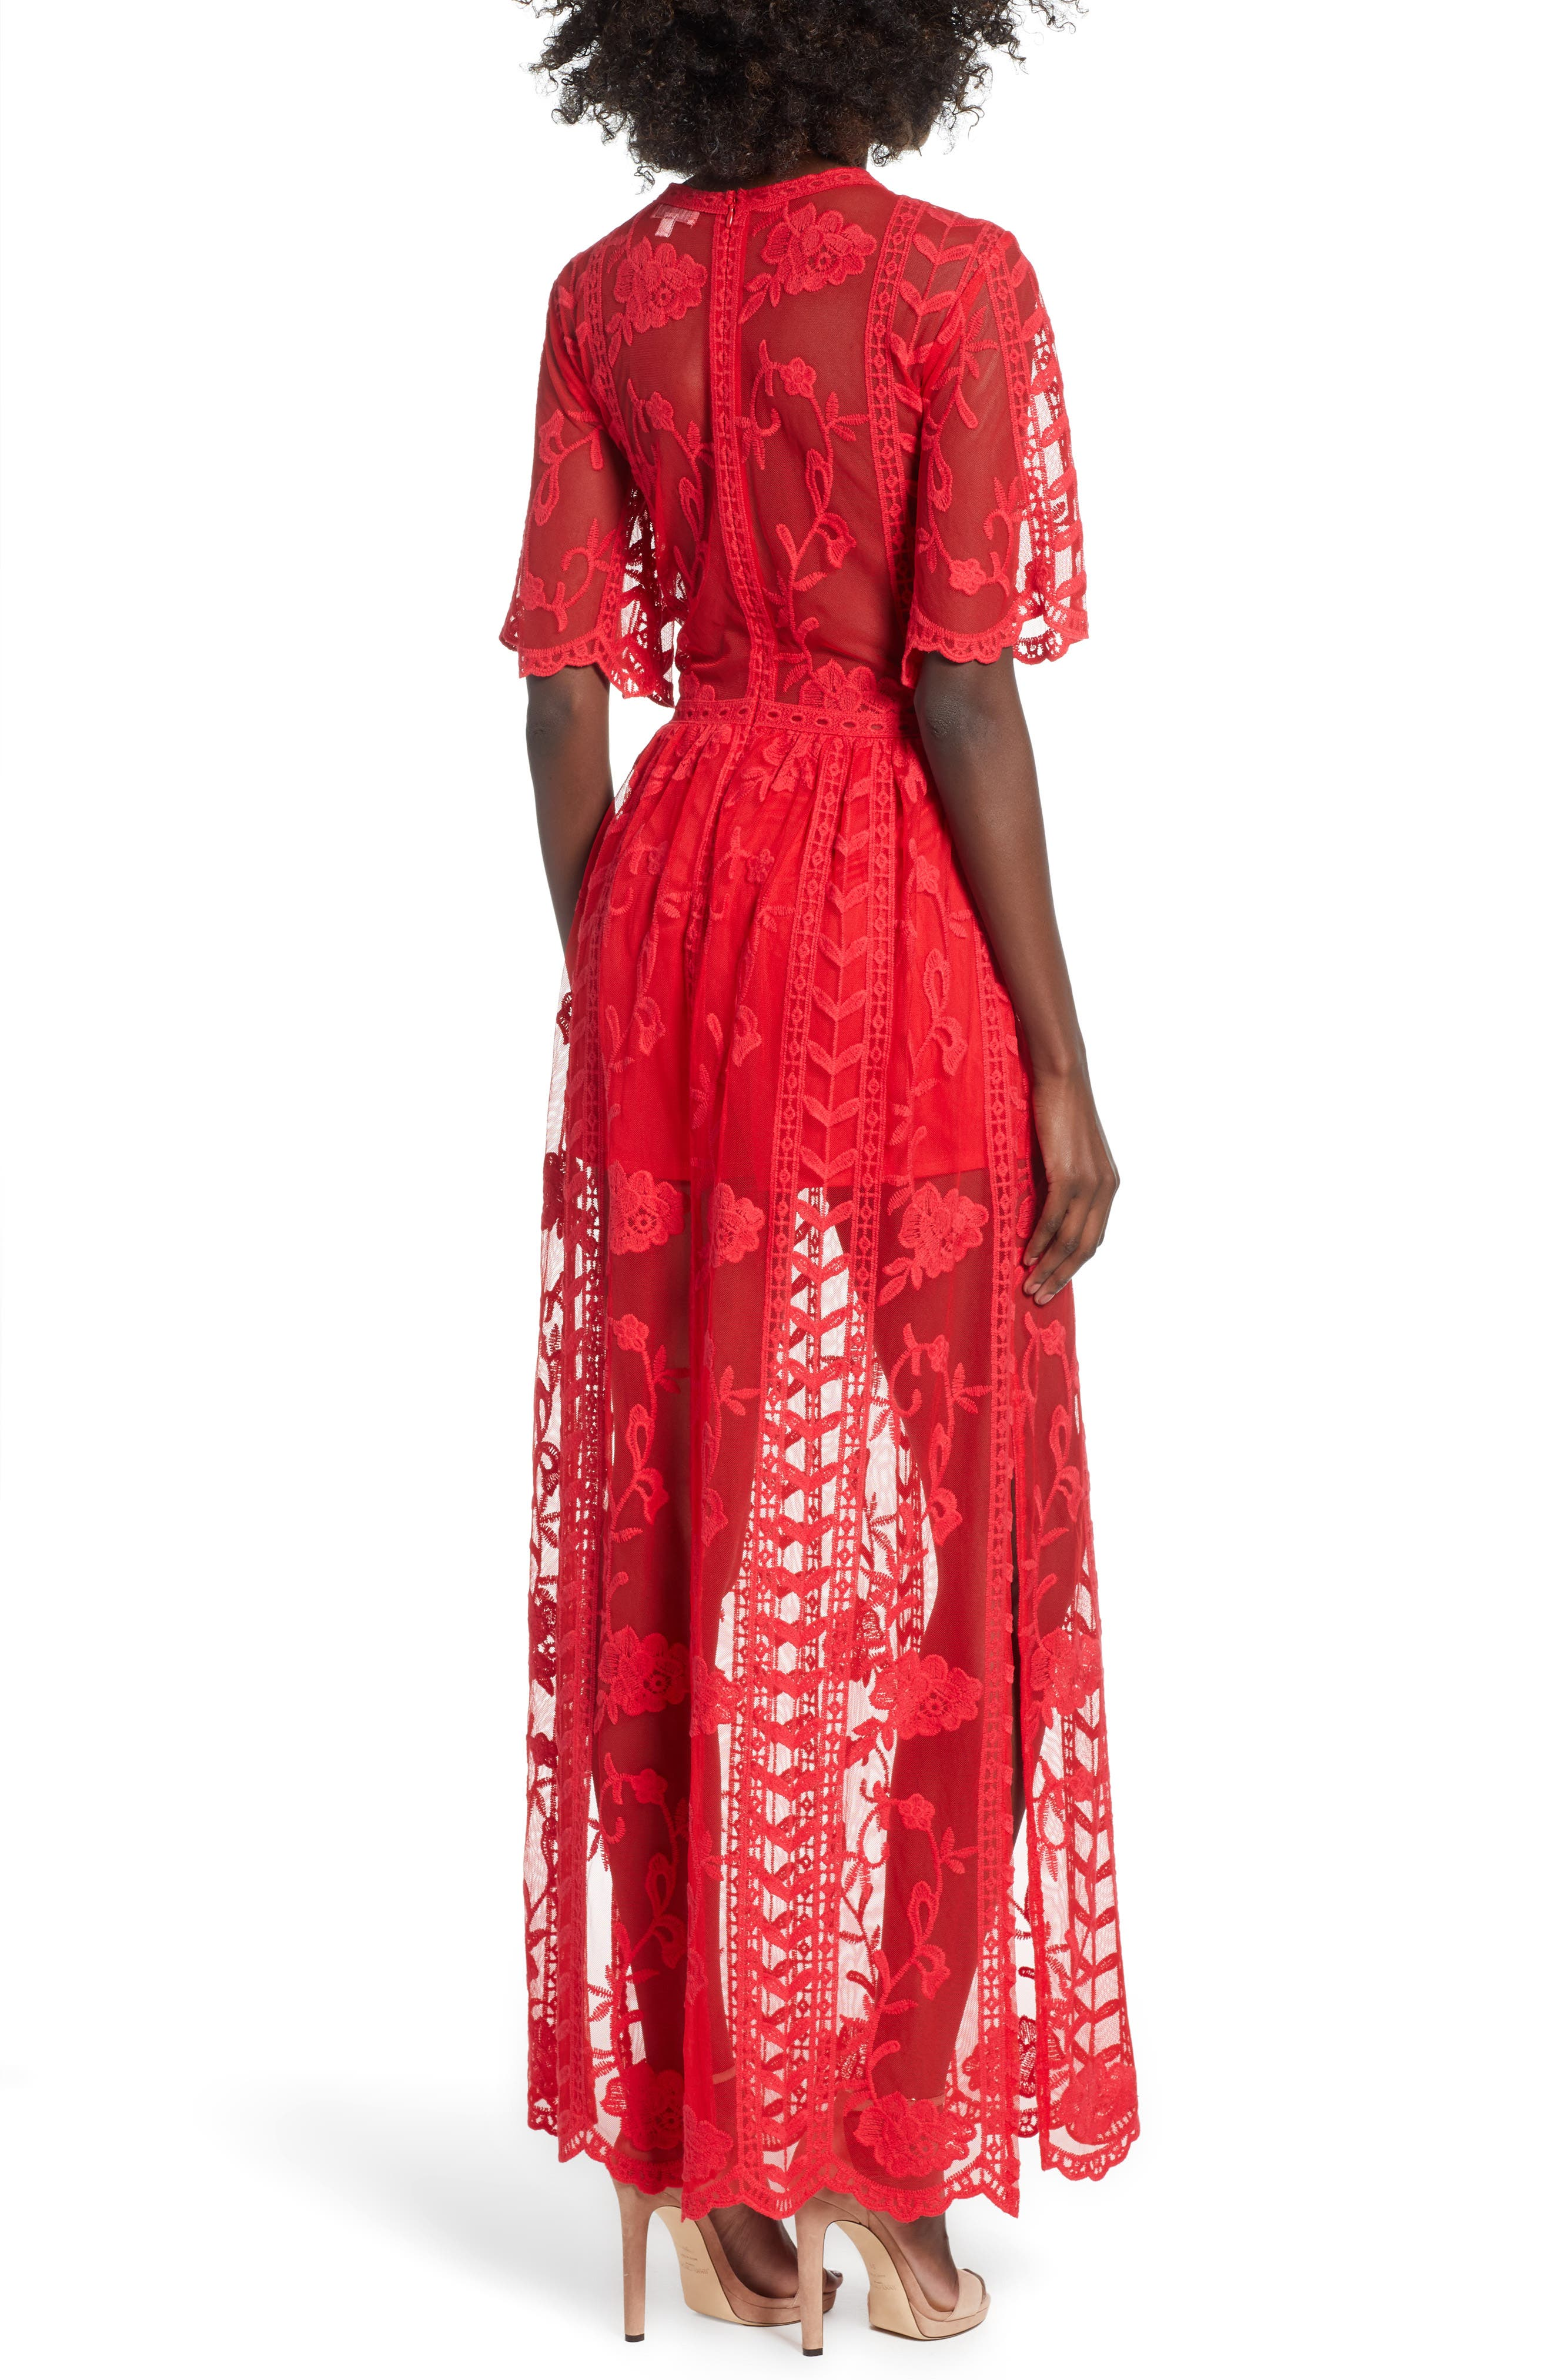 SOCIALITE, Lace Overlay Romper, Alternate thumbnail 2, color, RED LIPSTICK